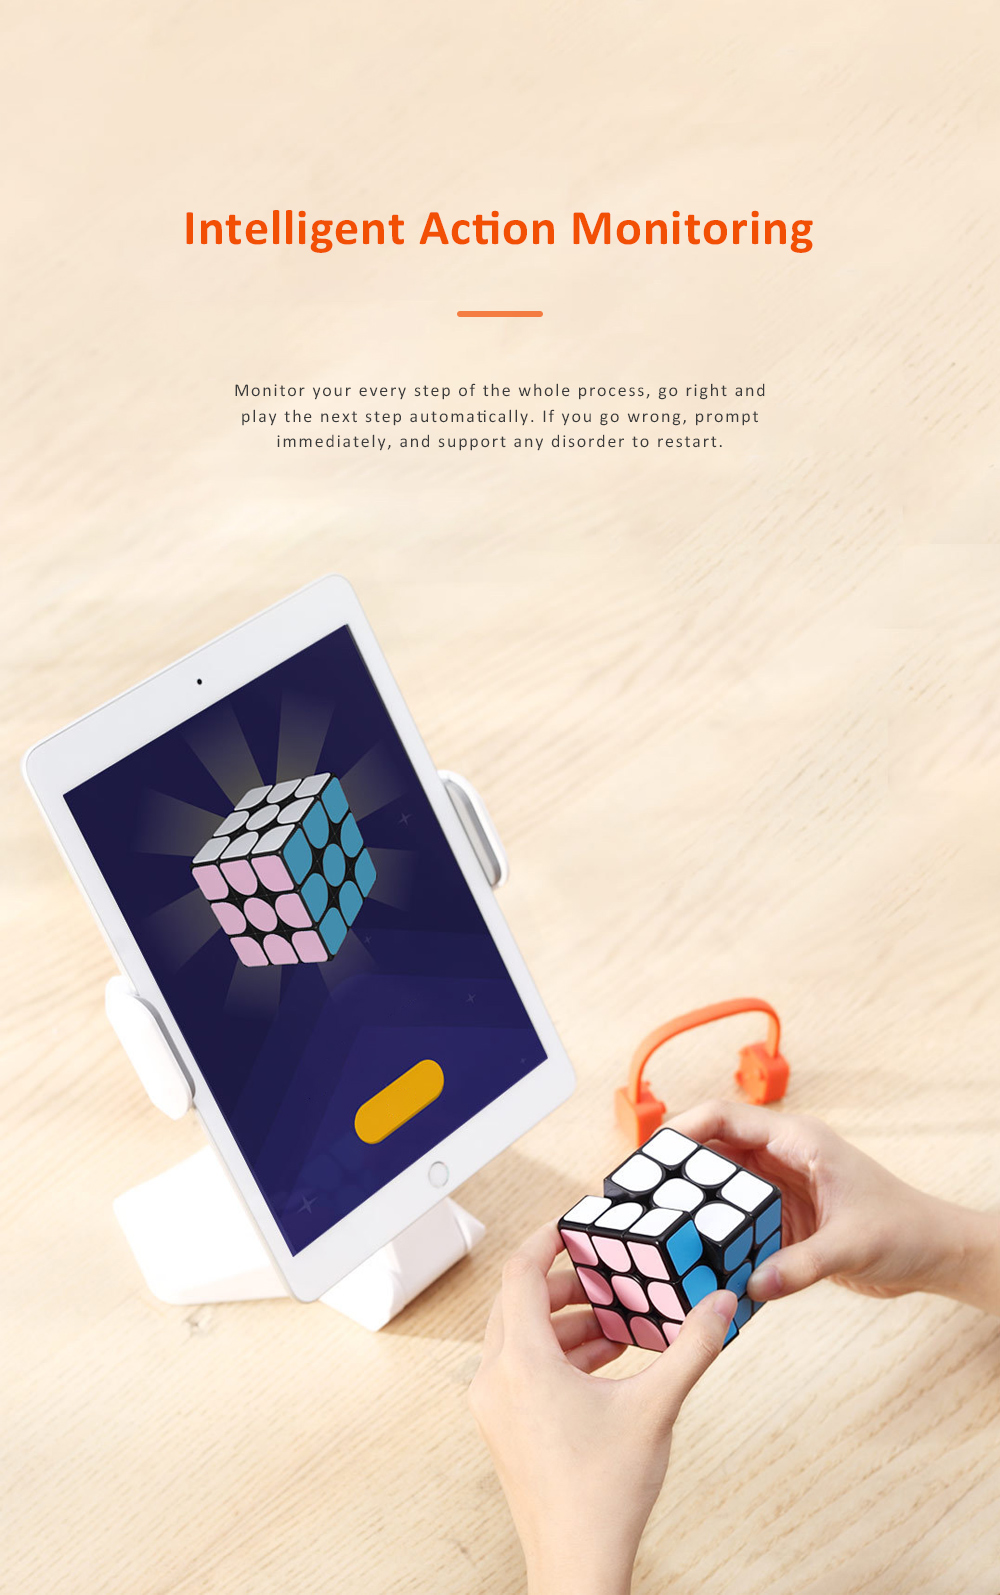 MI GIIKER Intelligent Super Cube Smart Magic Cube with Bluetooth Connection Real-time Sync for Education and Playing 4